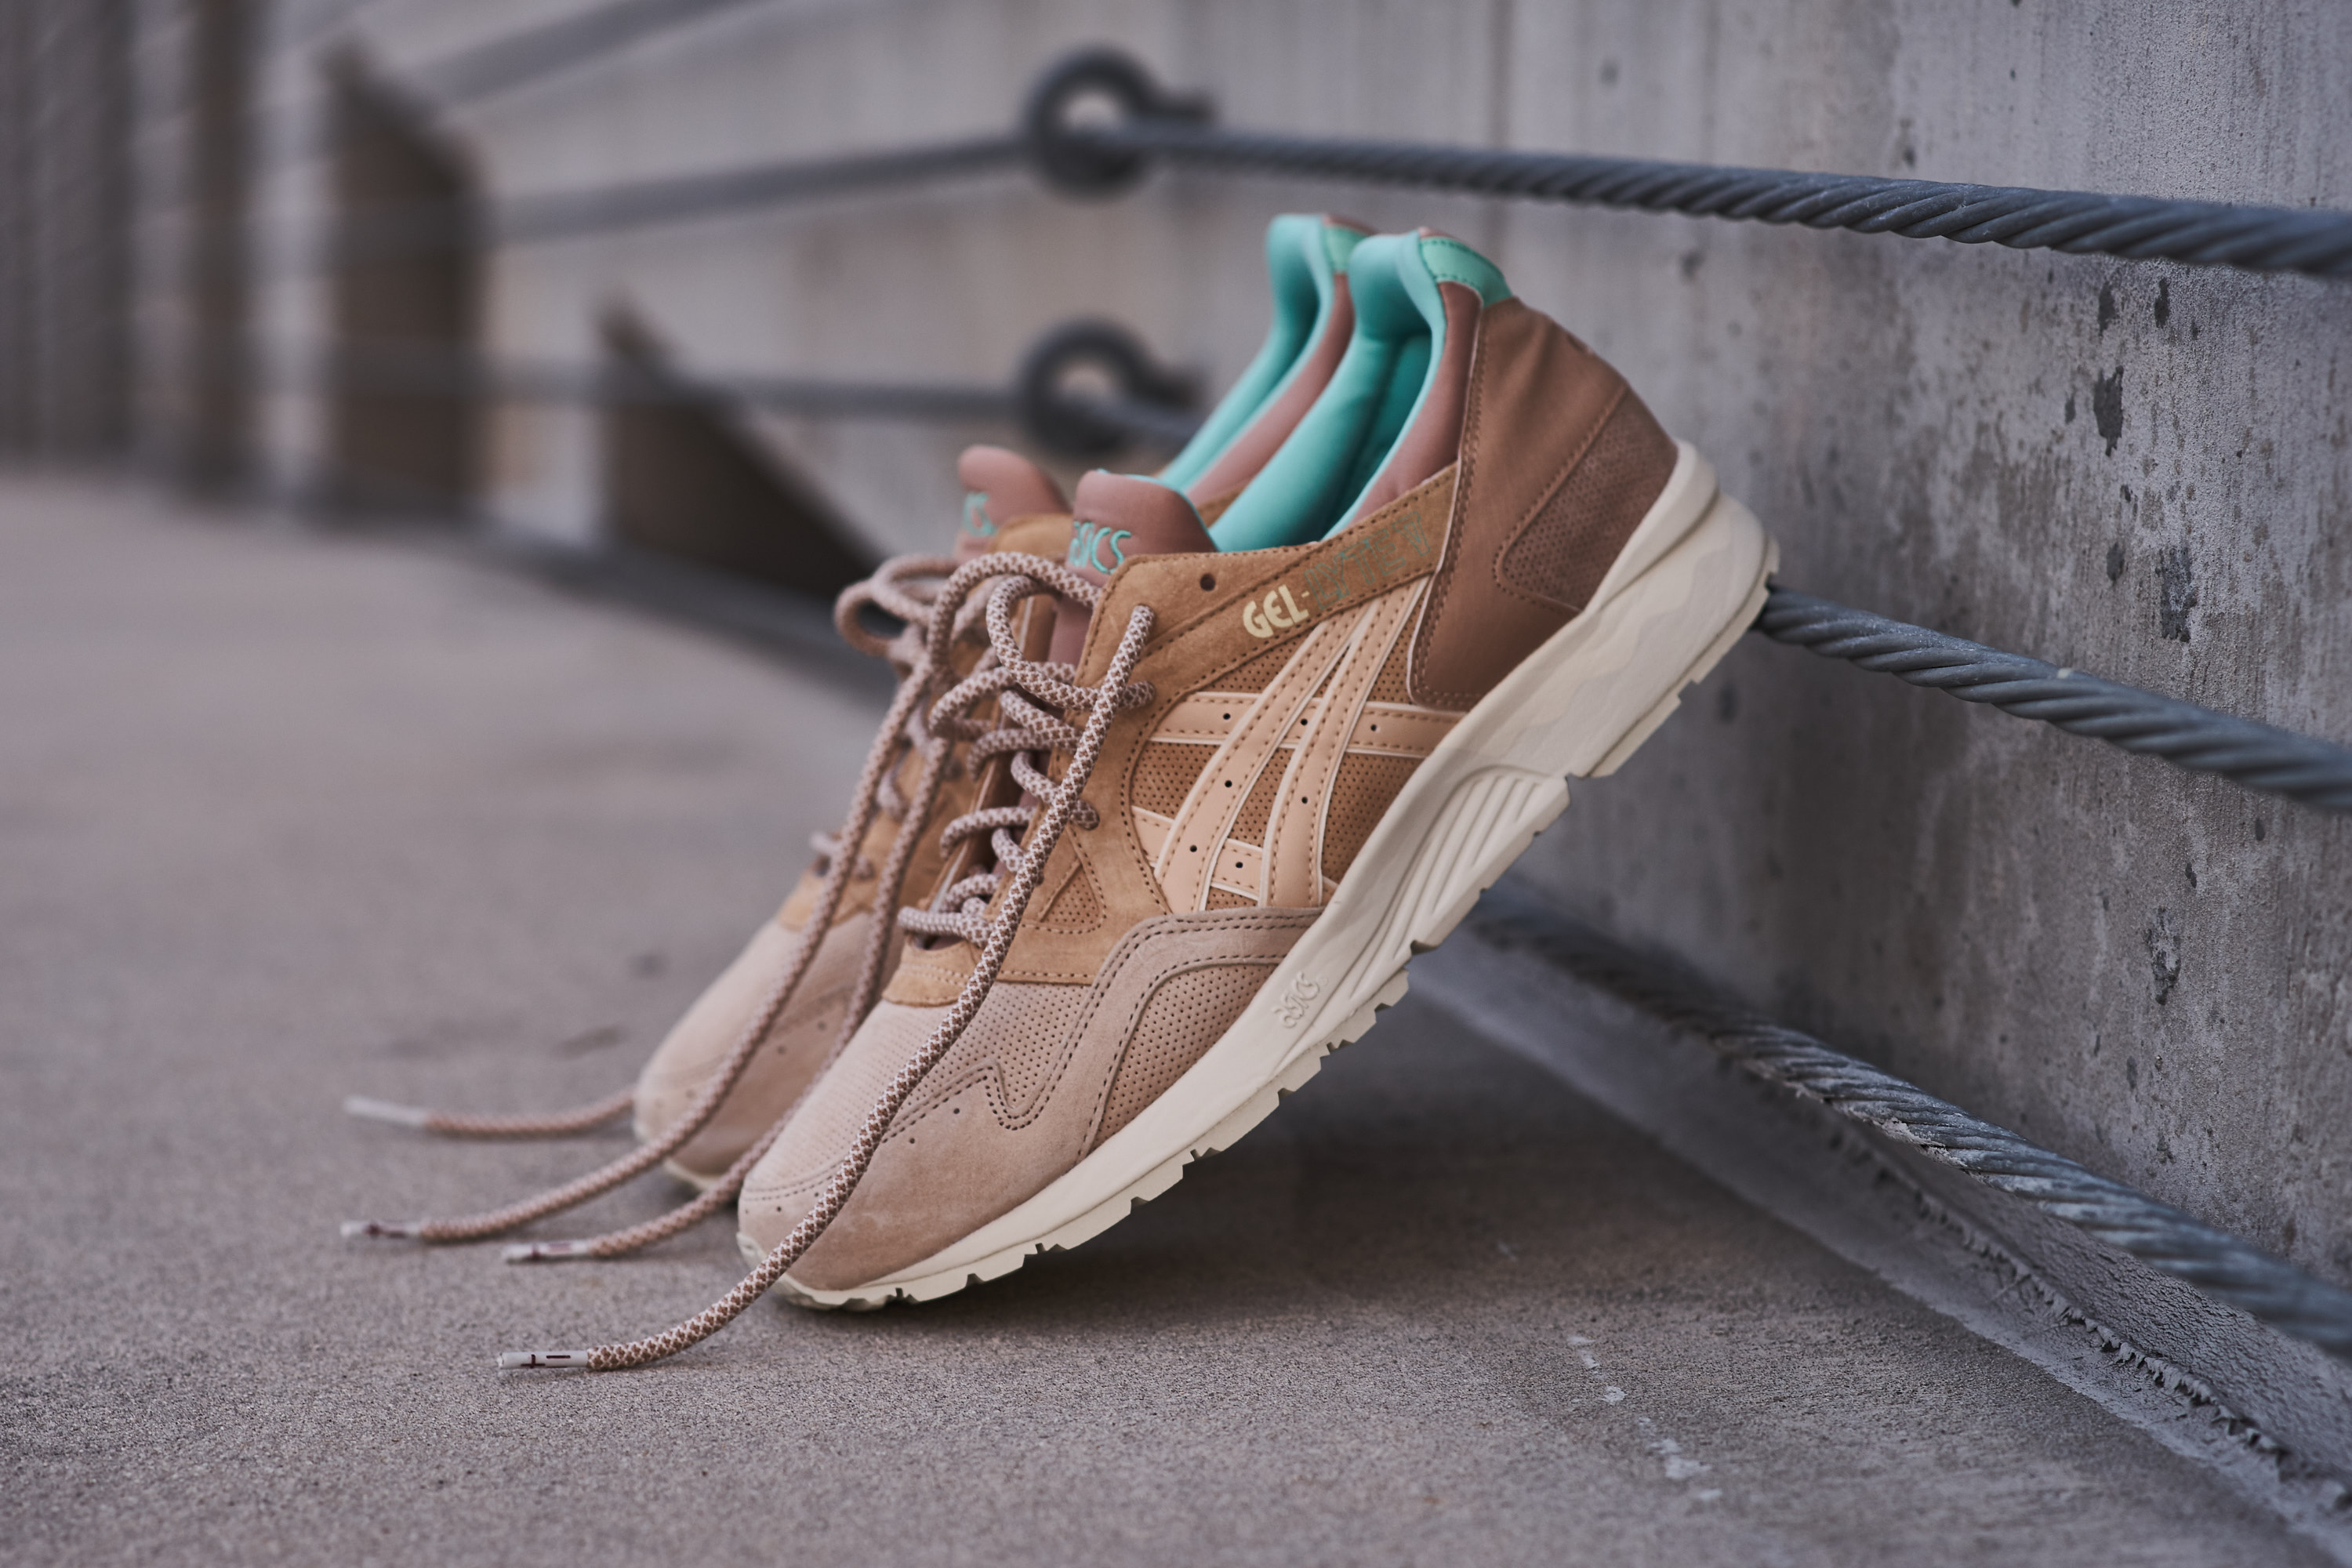 offspring-x-asics-gel-lyte-5-wordintown-jayromero-photography-sneakers-footwear-miami-uk-copyright-5